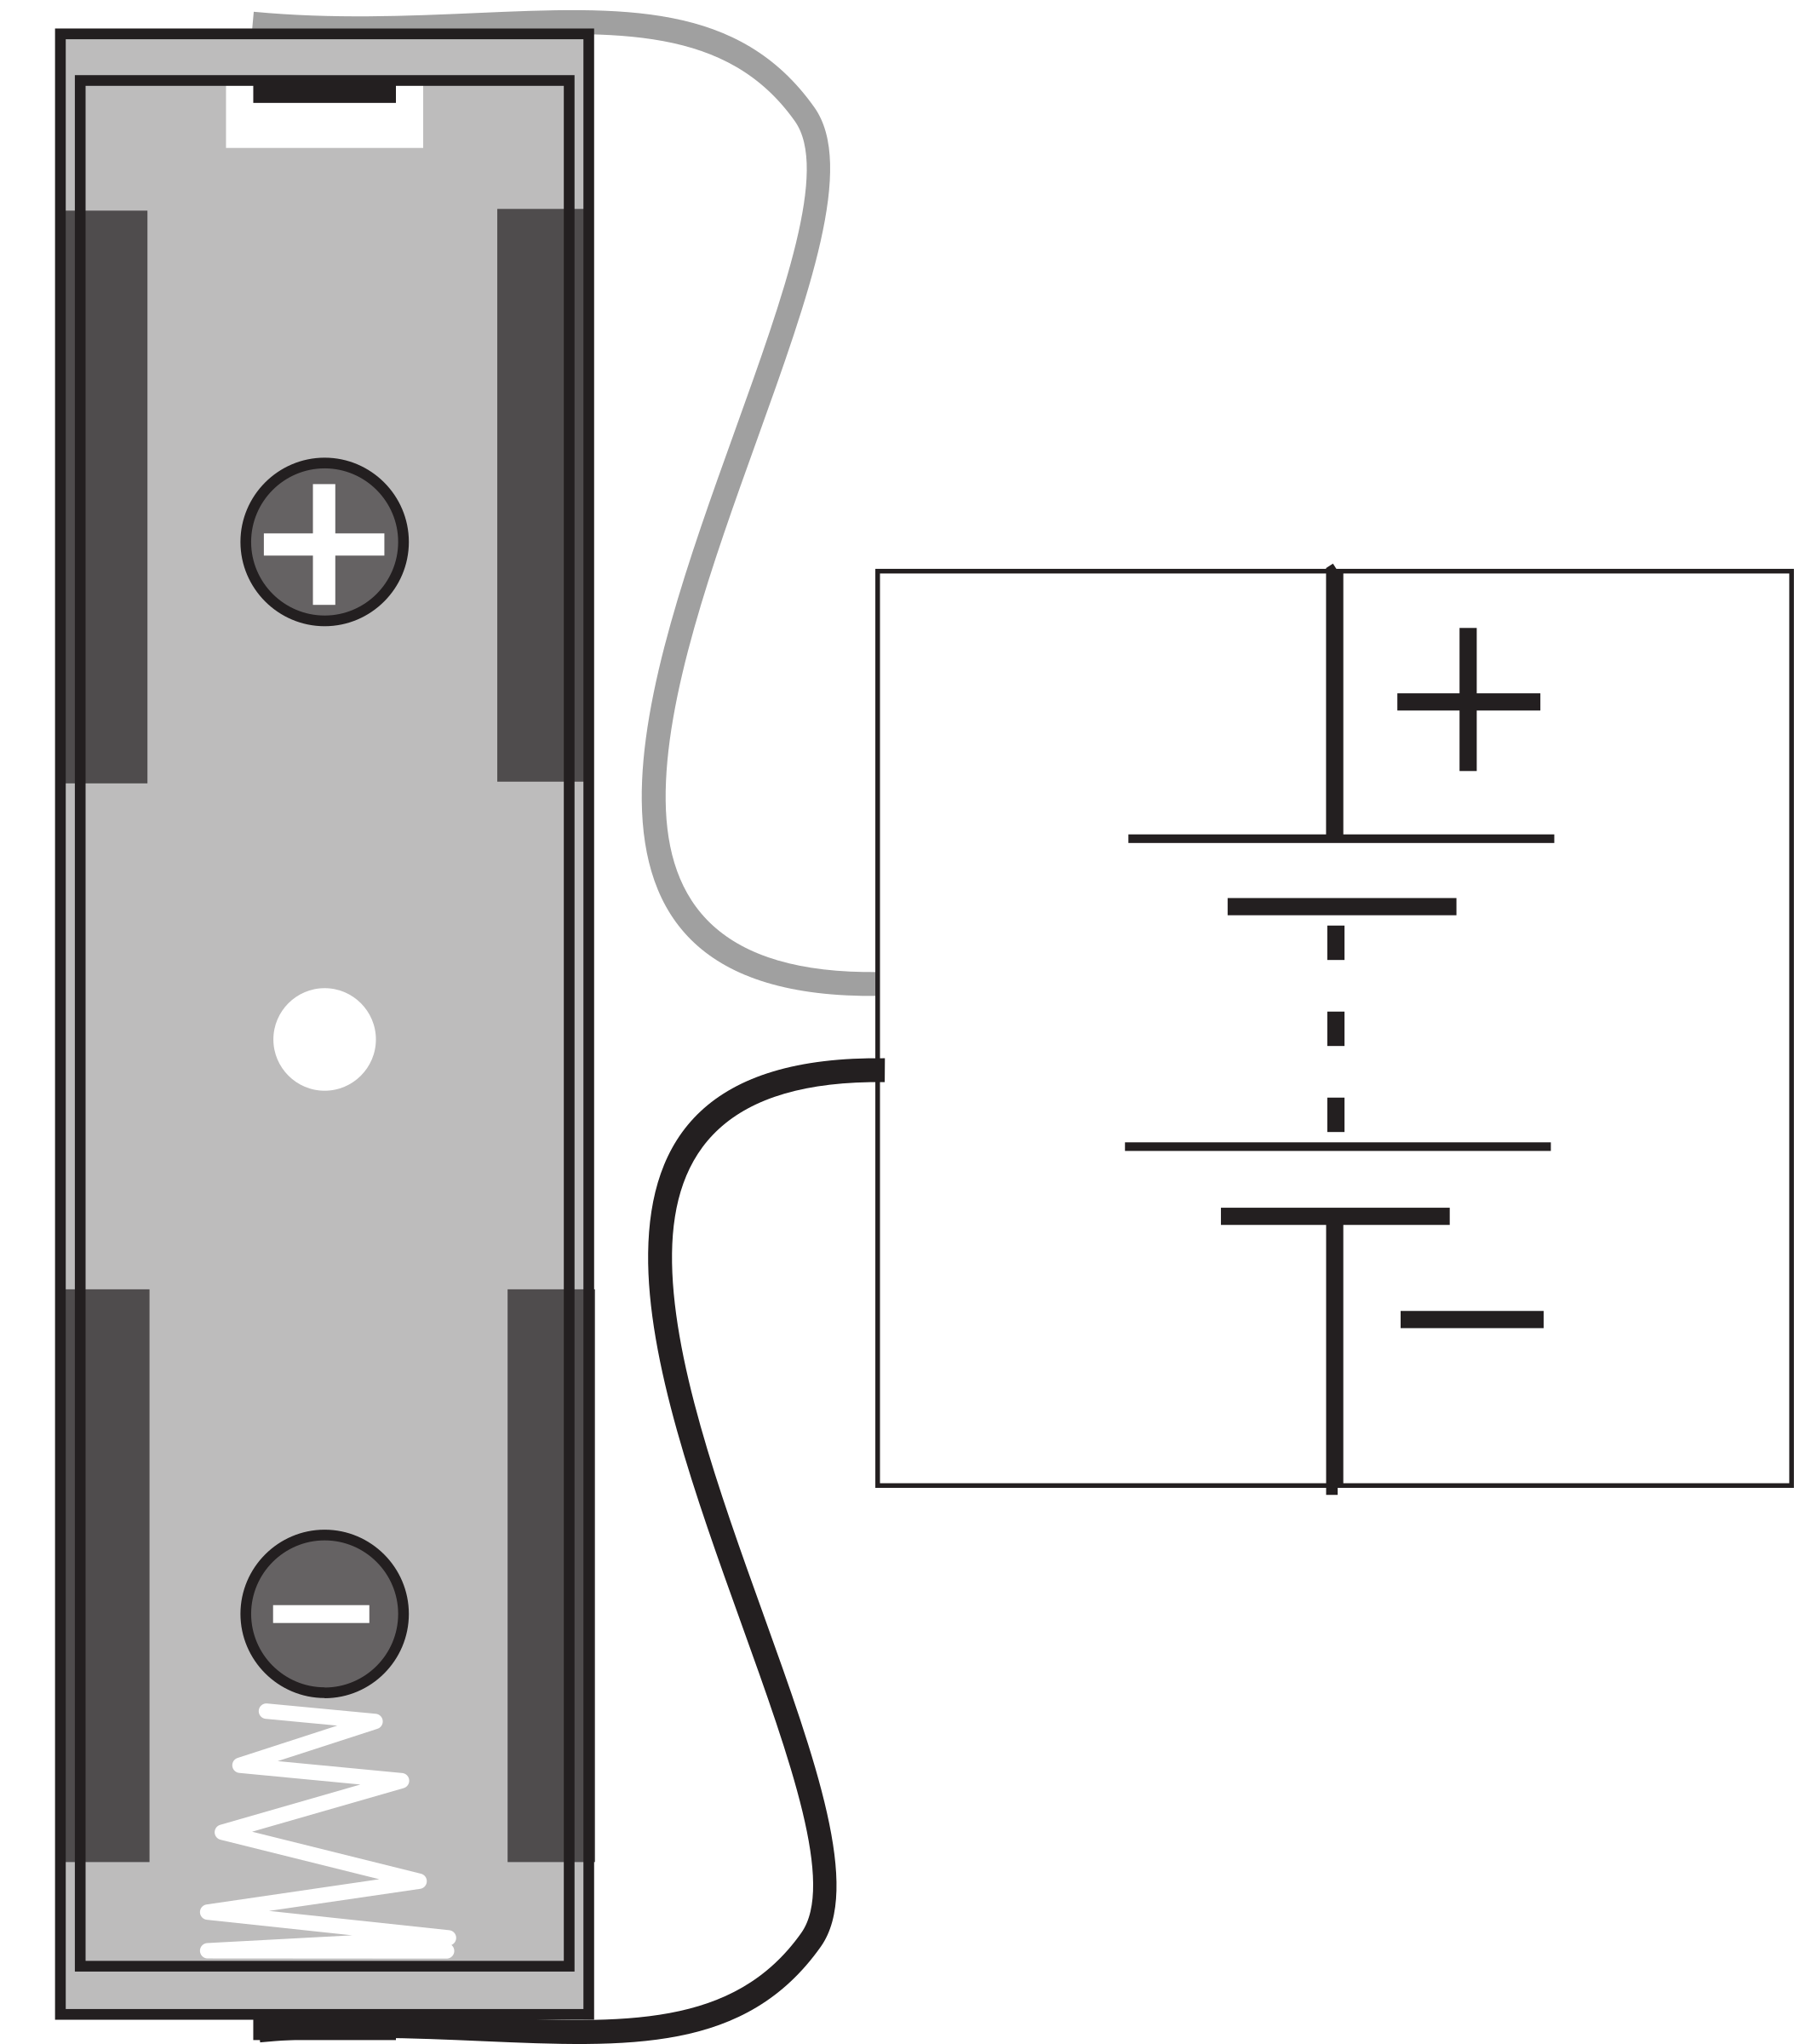 Nimh Charger Schematic Free Download Wiring Diagram Schematic